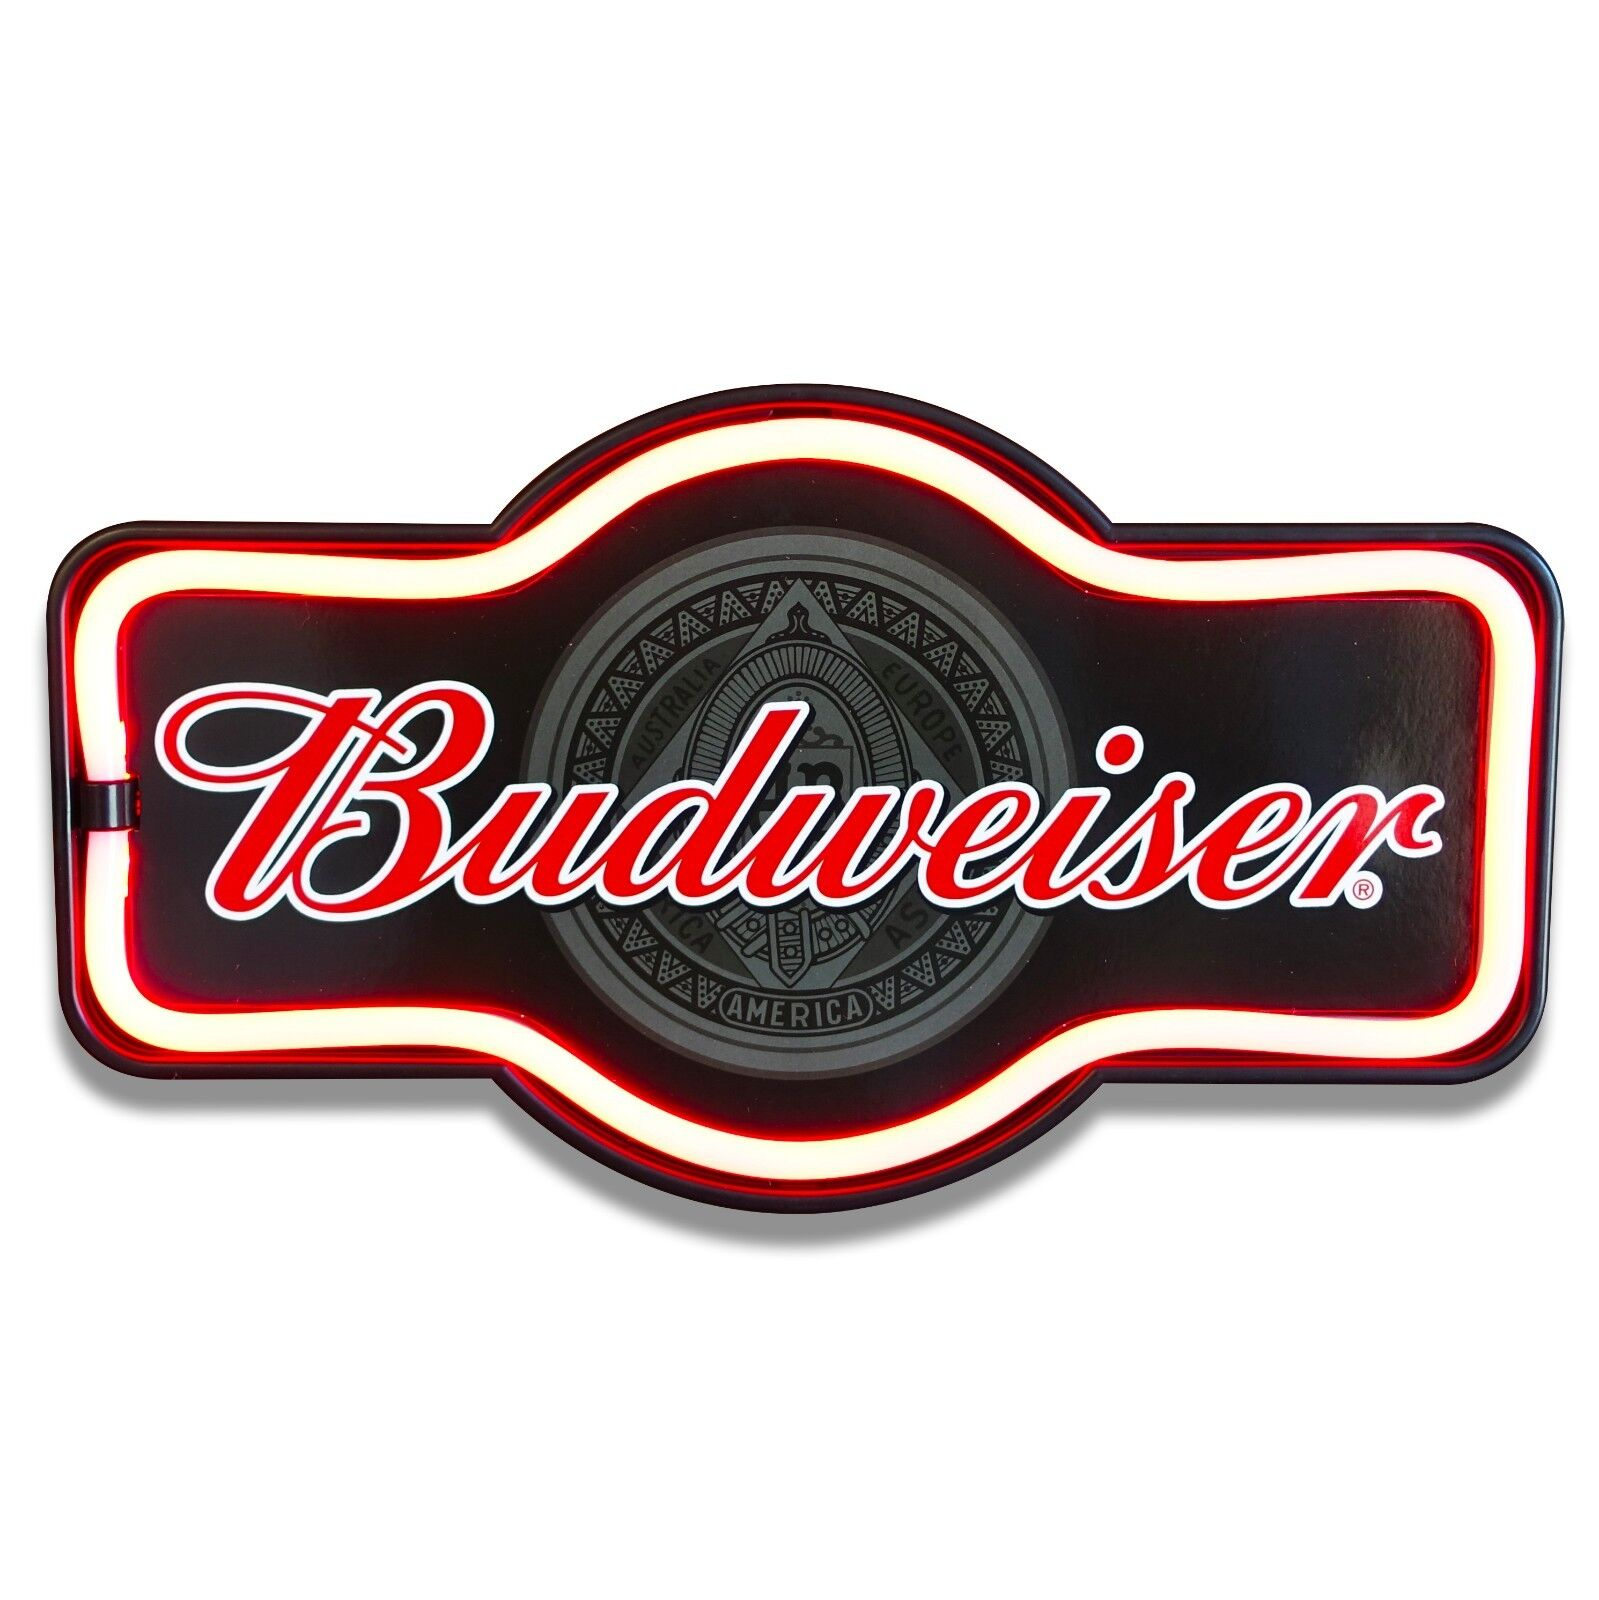 Budweiser Beer LED Neon Lighted Sign Marquee Shape For Bar,